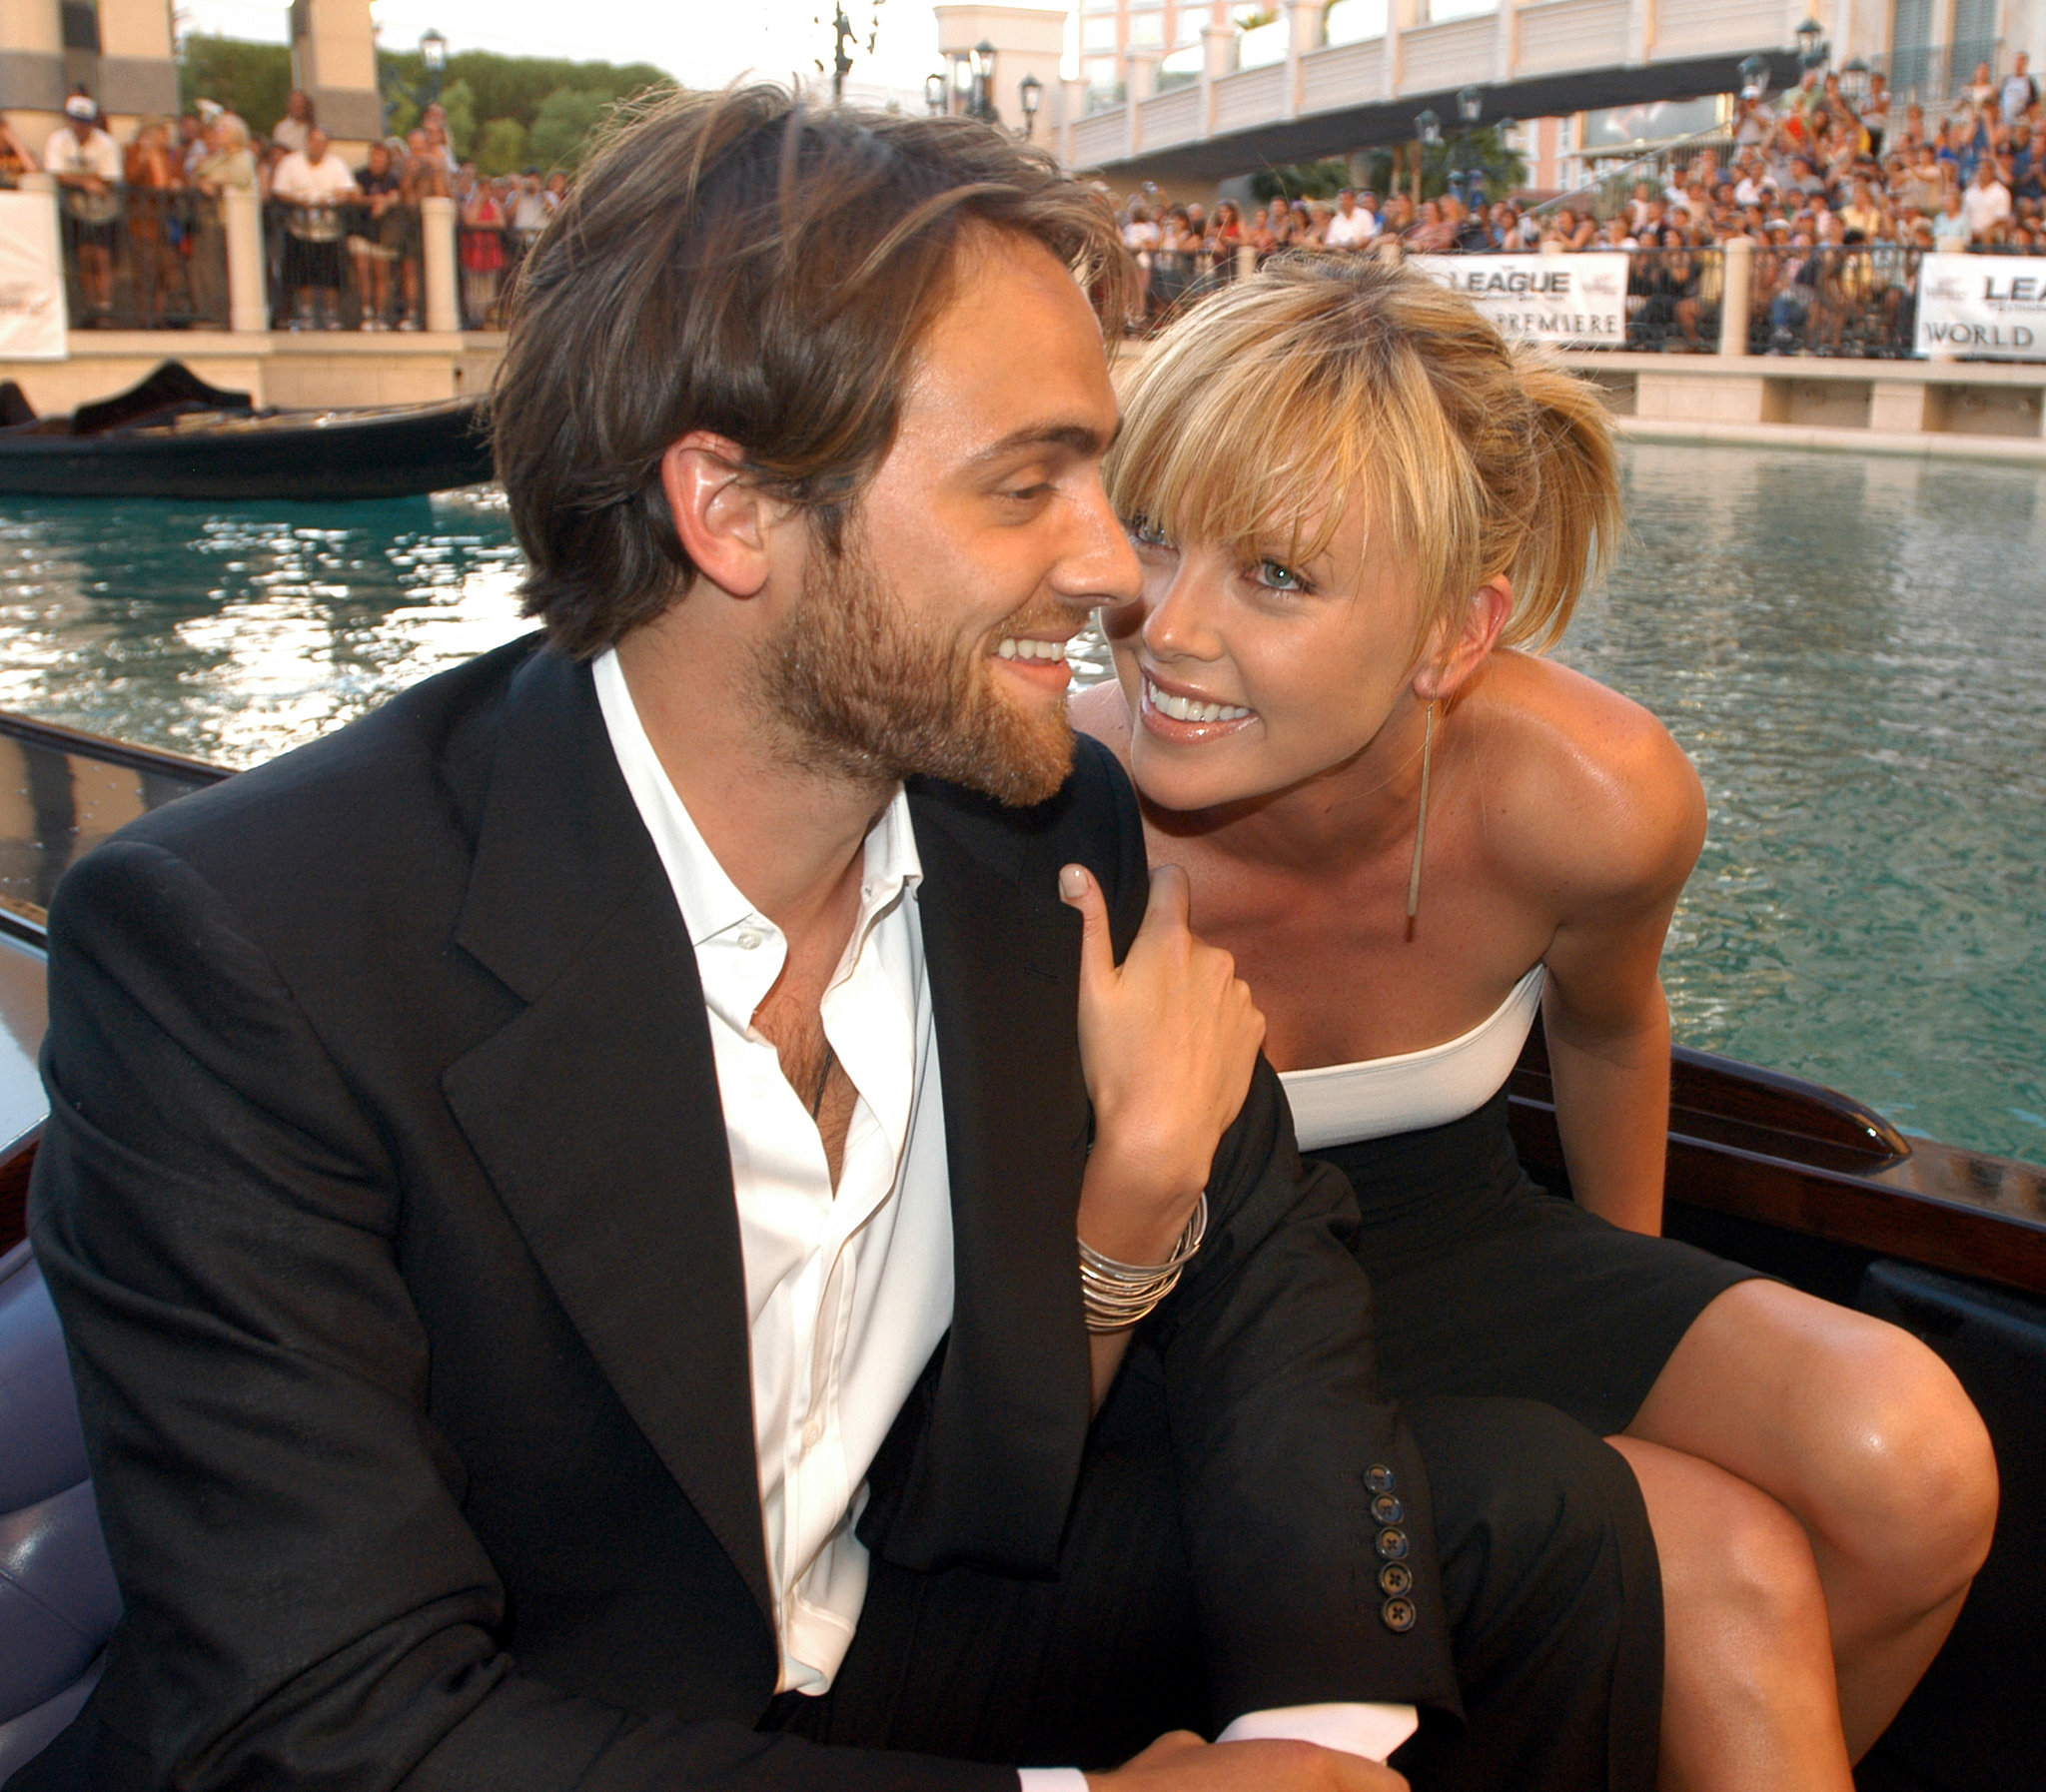 In June 2003, Charlize Theron and Stuart Townsend took a gondola to the Vegas premiere of The League of Extraordinary Gentlemen.